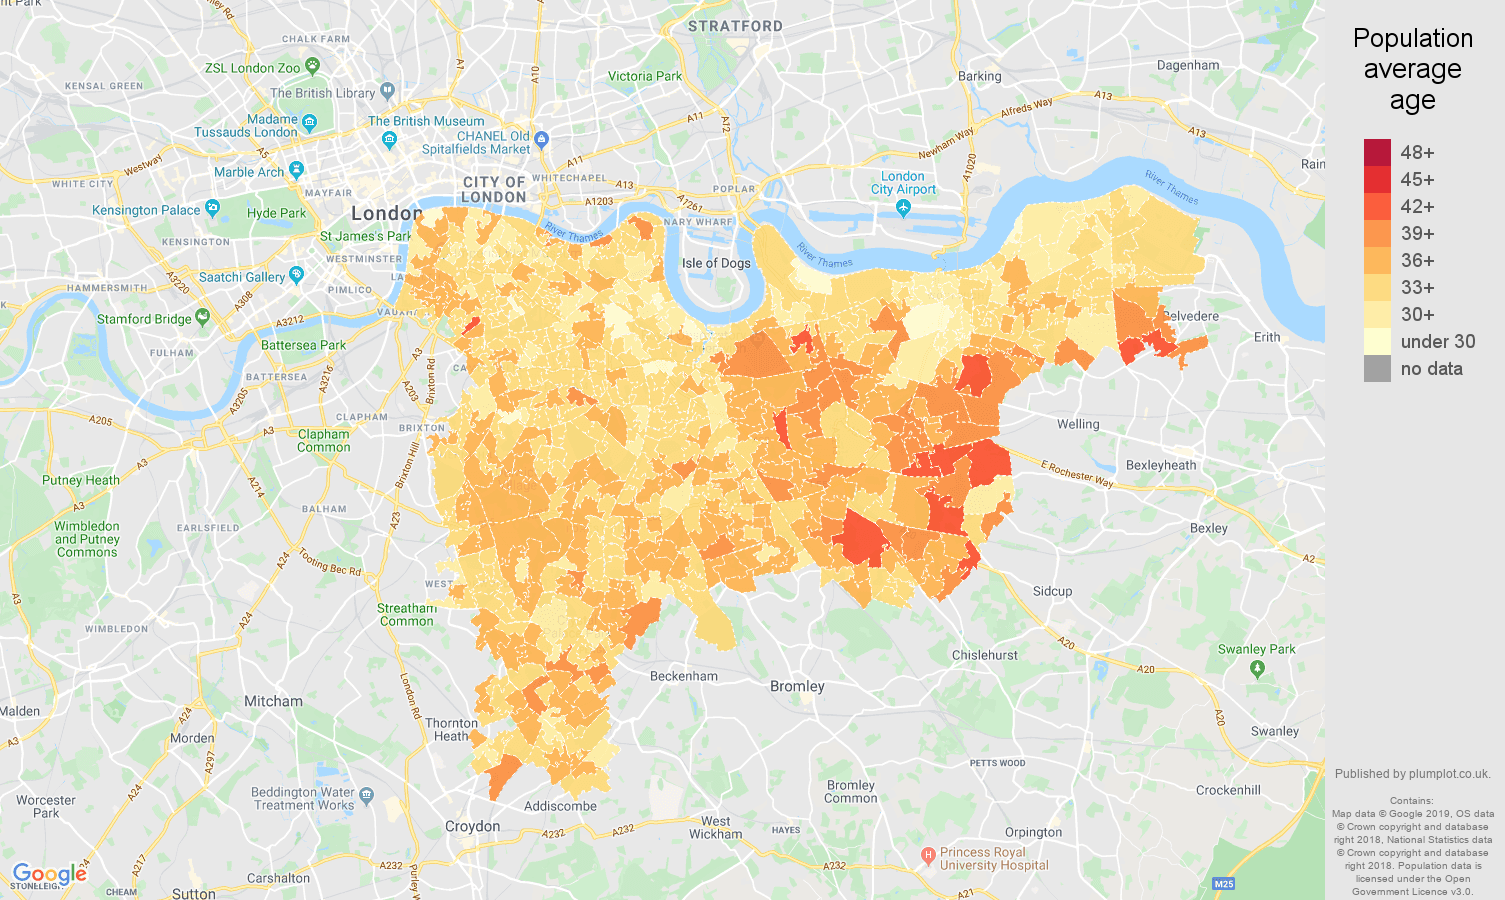 south east london population average age map